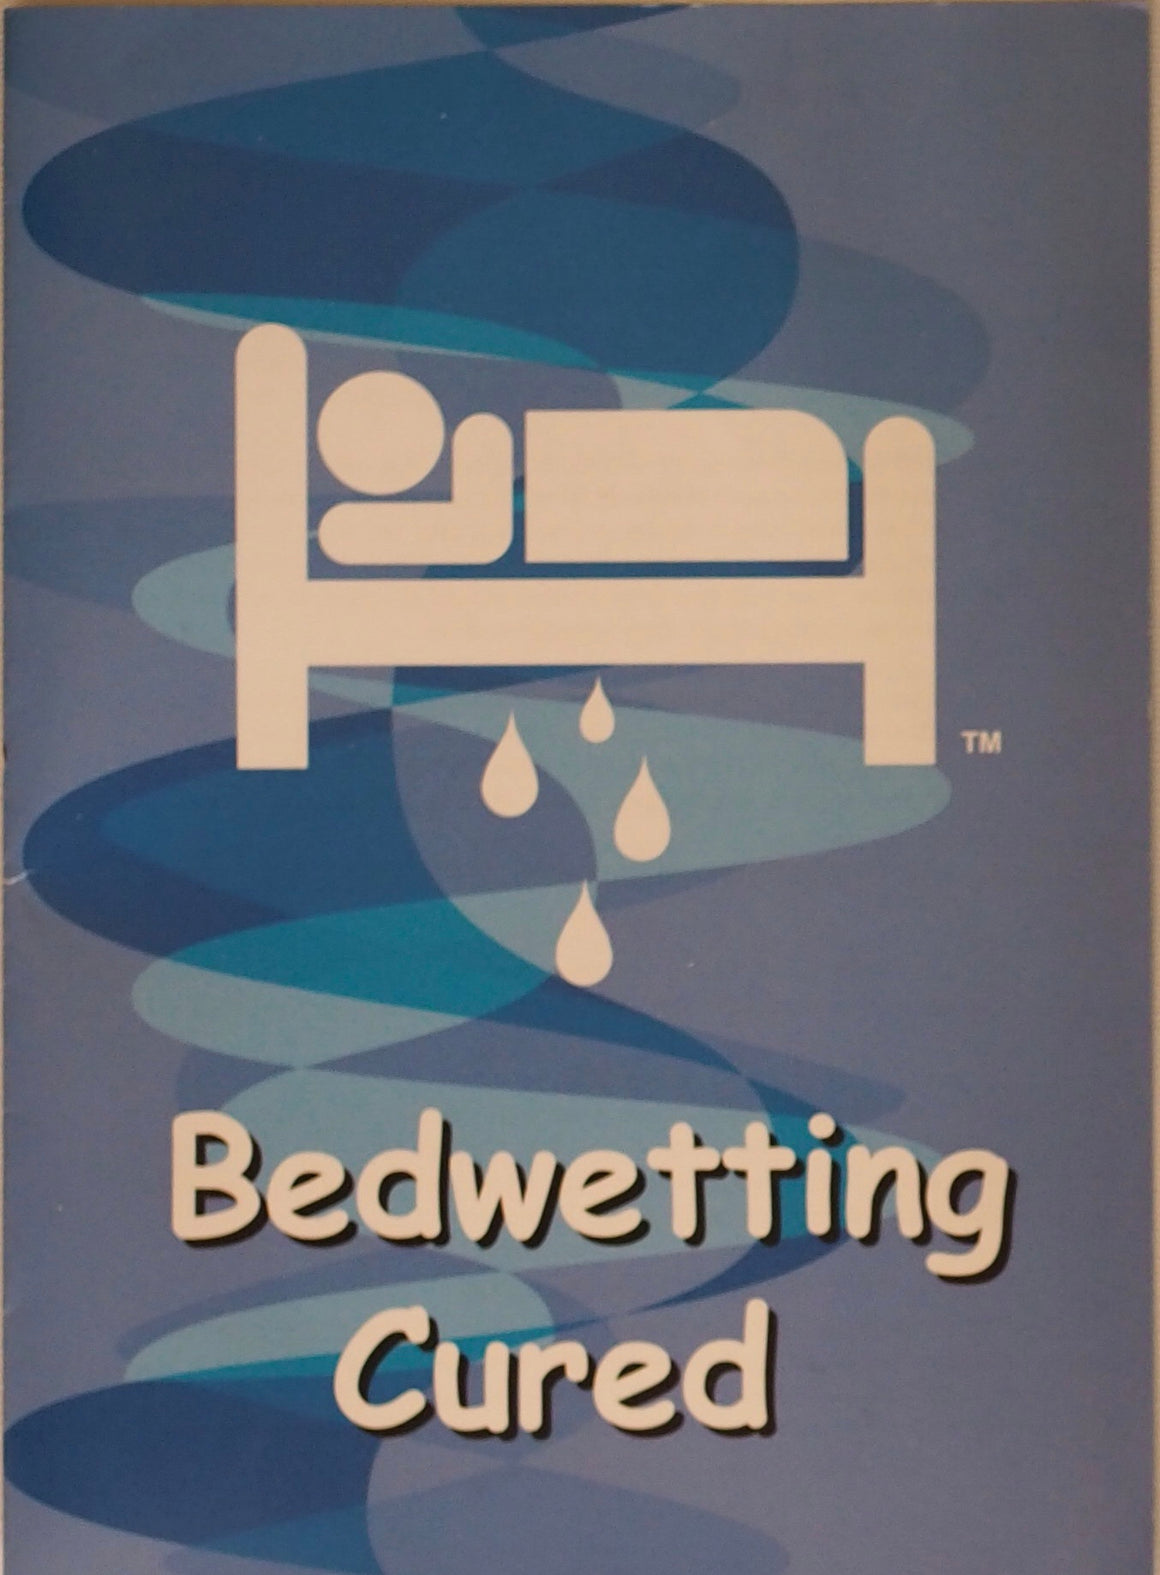 Bedwetting Cured DVD